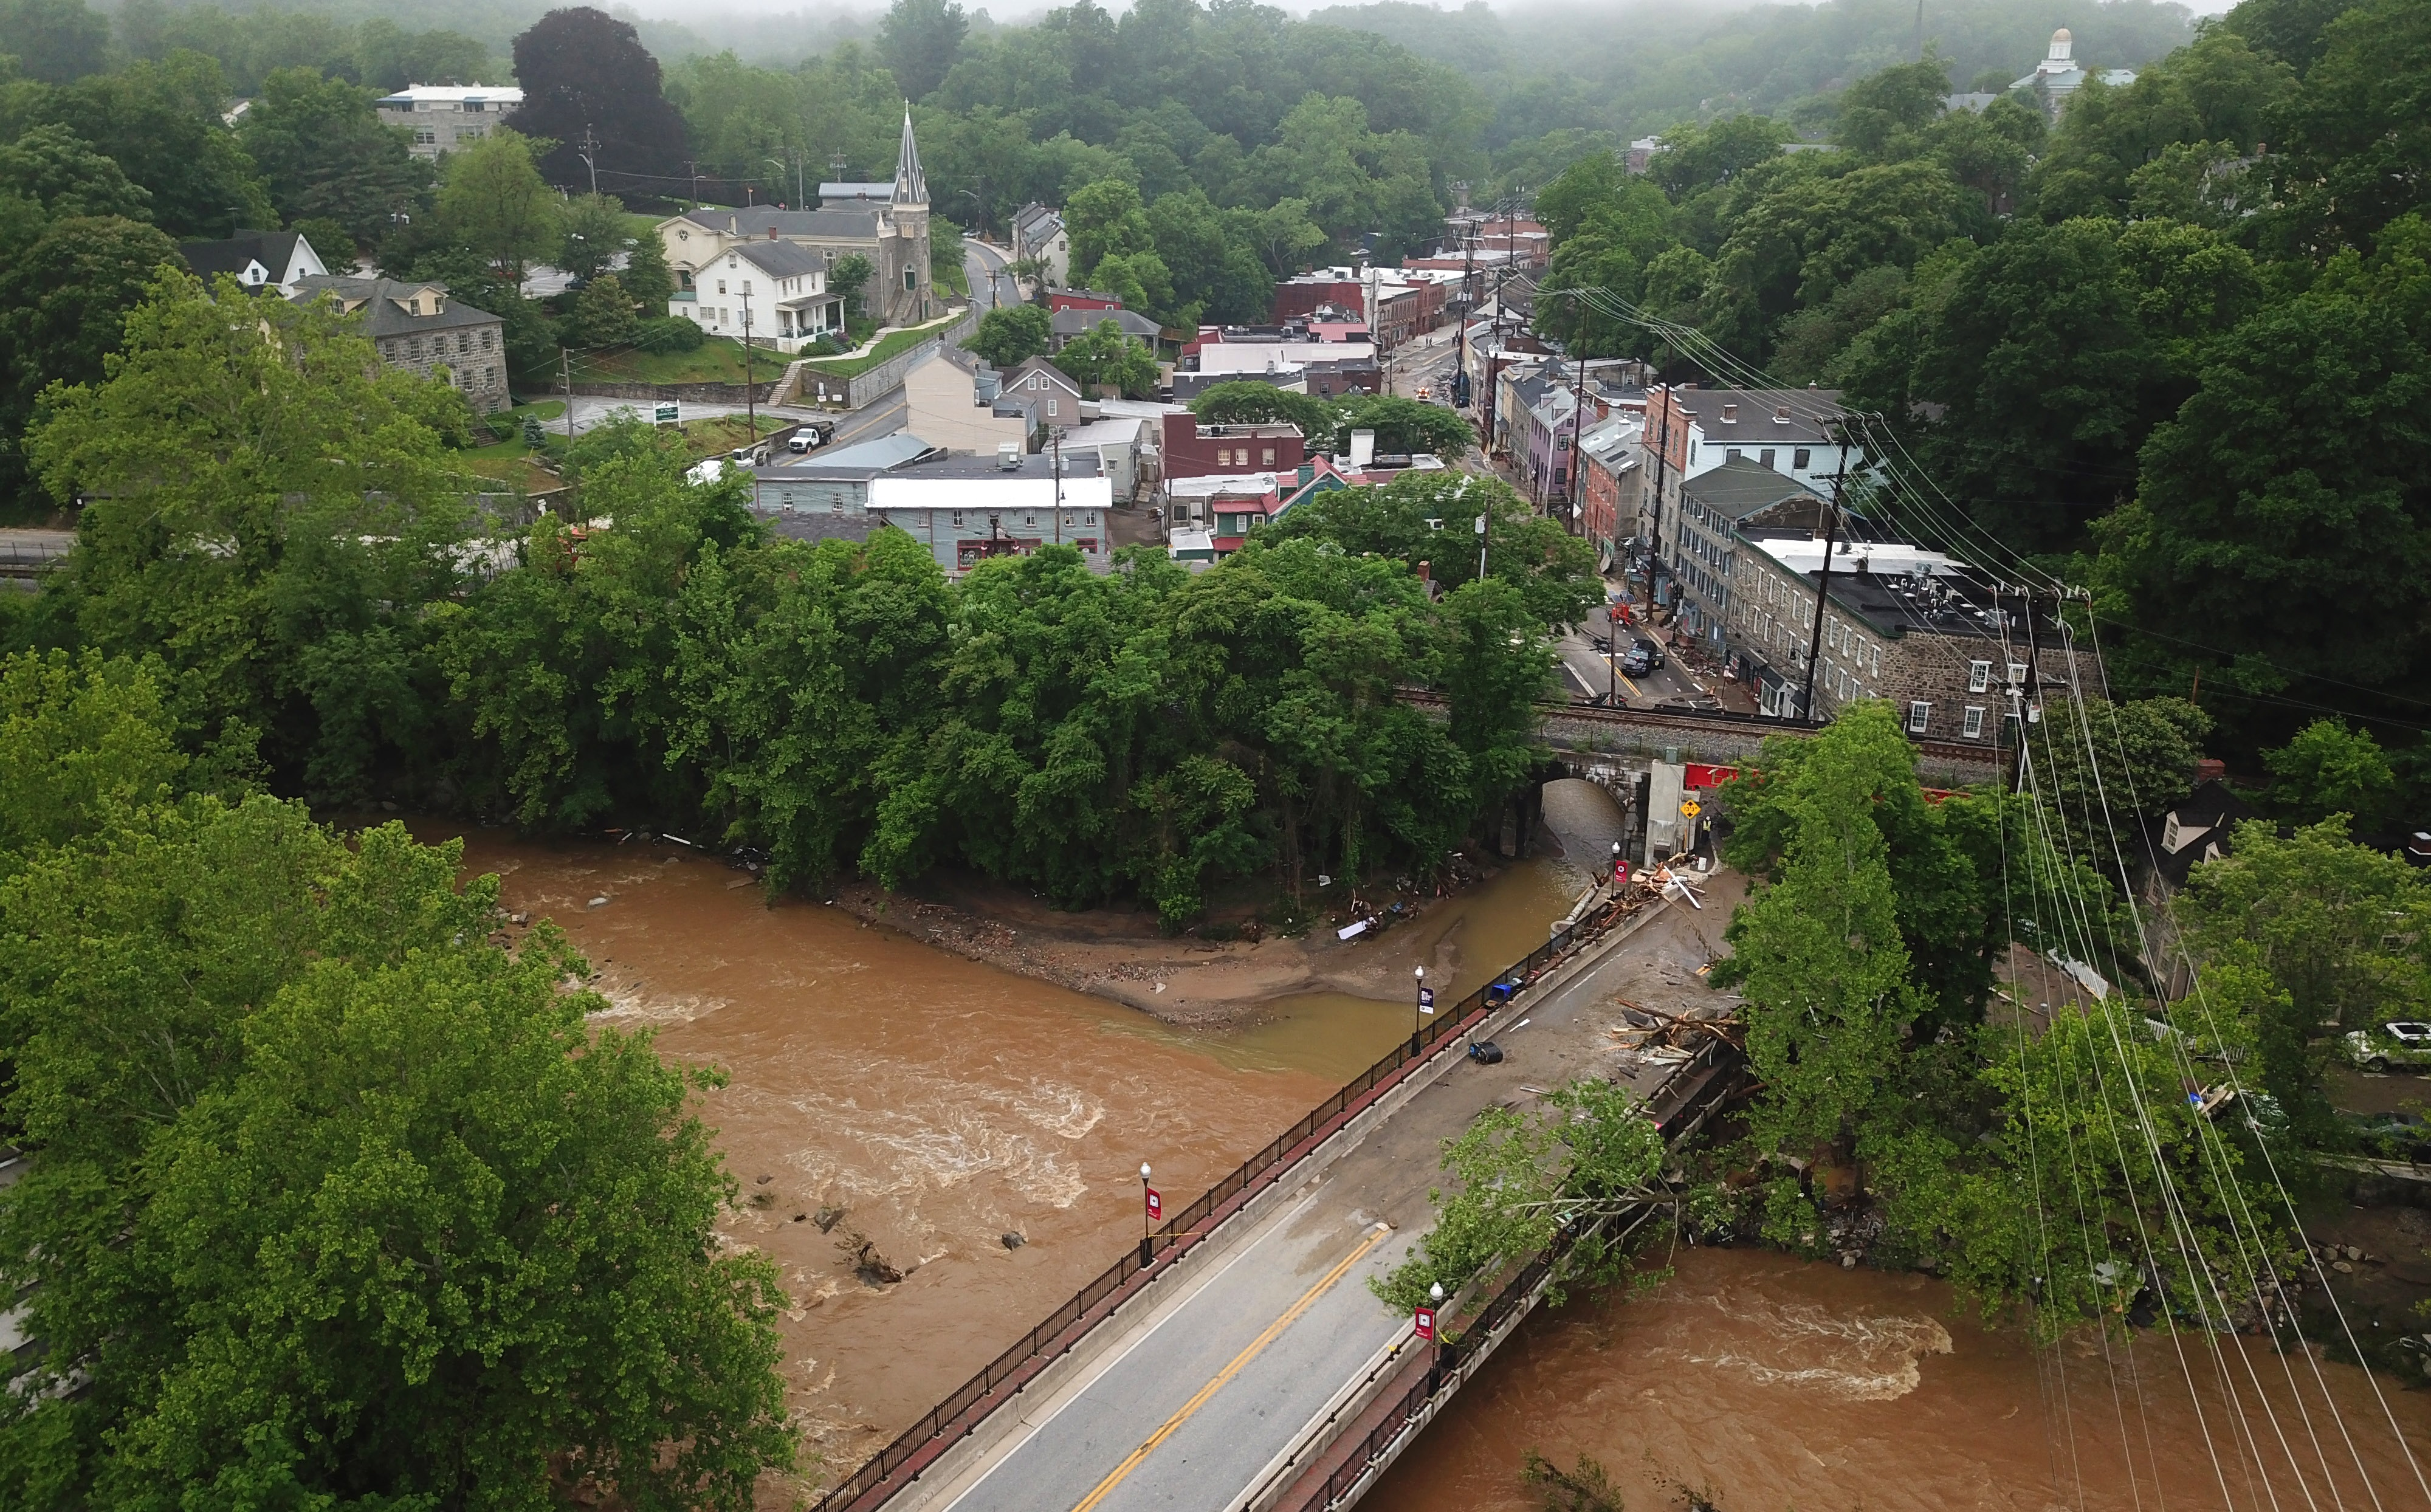 Main Street in Ellicott City is seen from above the day after a flash flood devastated the historic city on the Patapsco River. Photo: Jerry Jackson, permission from Baltimore Sun Media. All rights reserved.